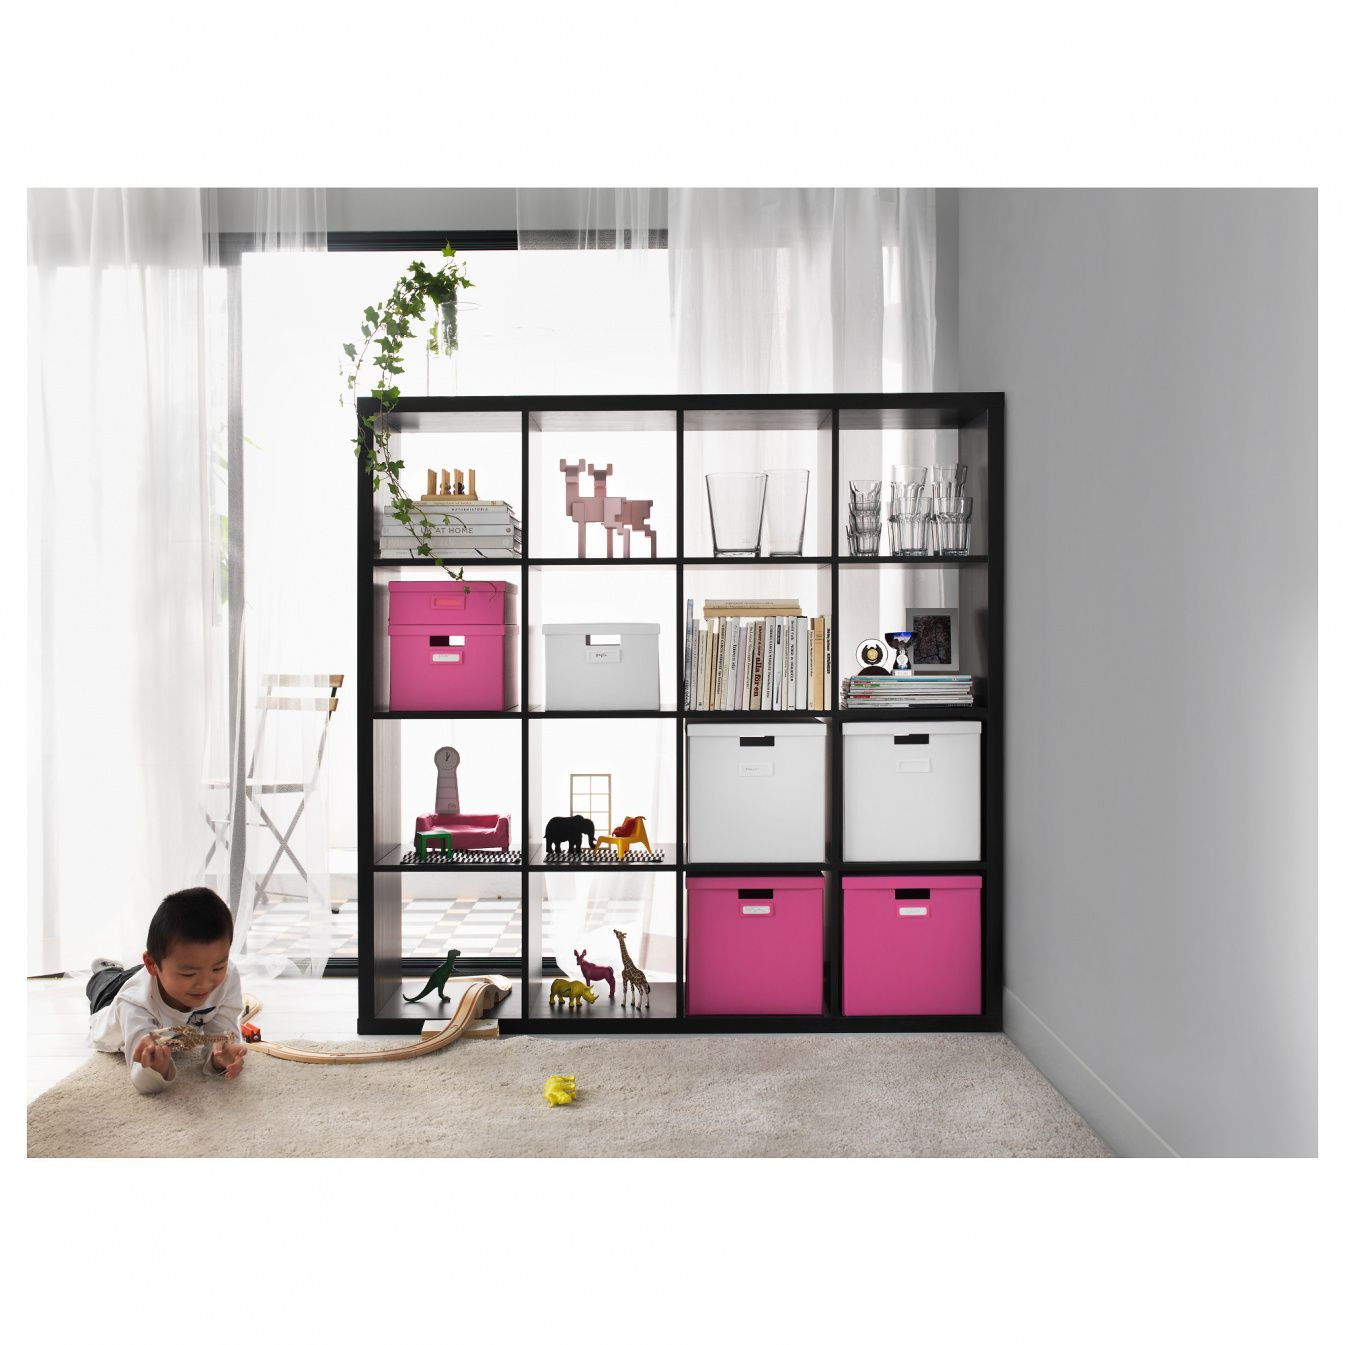 image uk bookcase for of throughout ideas x info ikea architecture open partitions divider room bookcases dividers design popular wdays